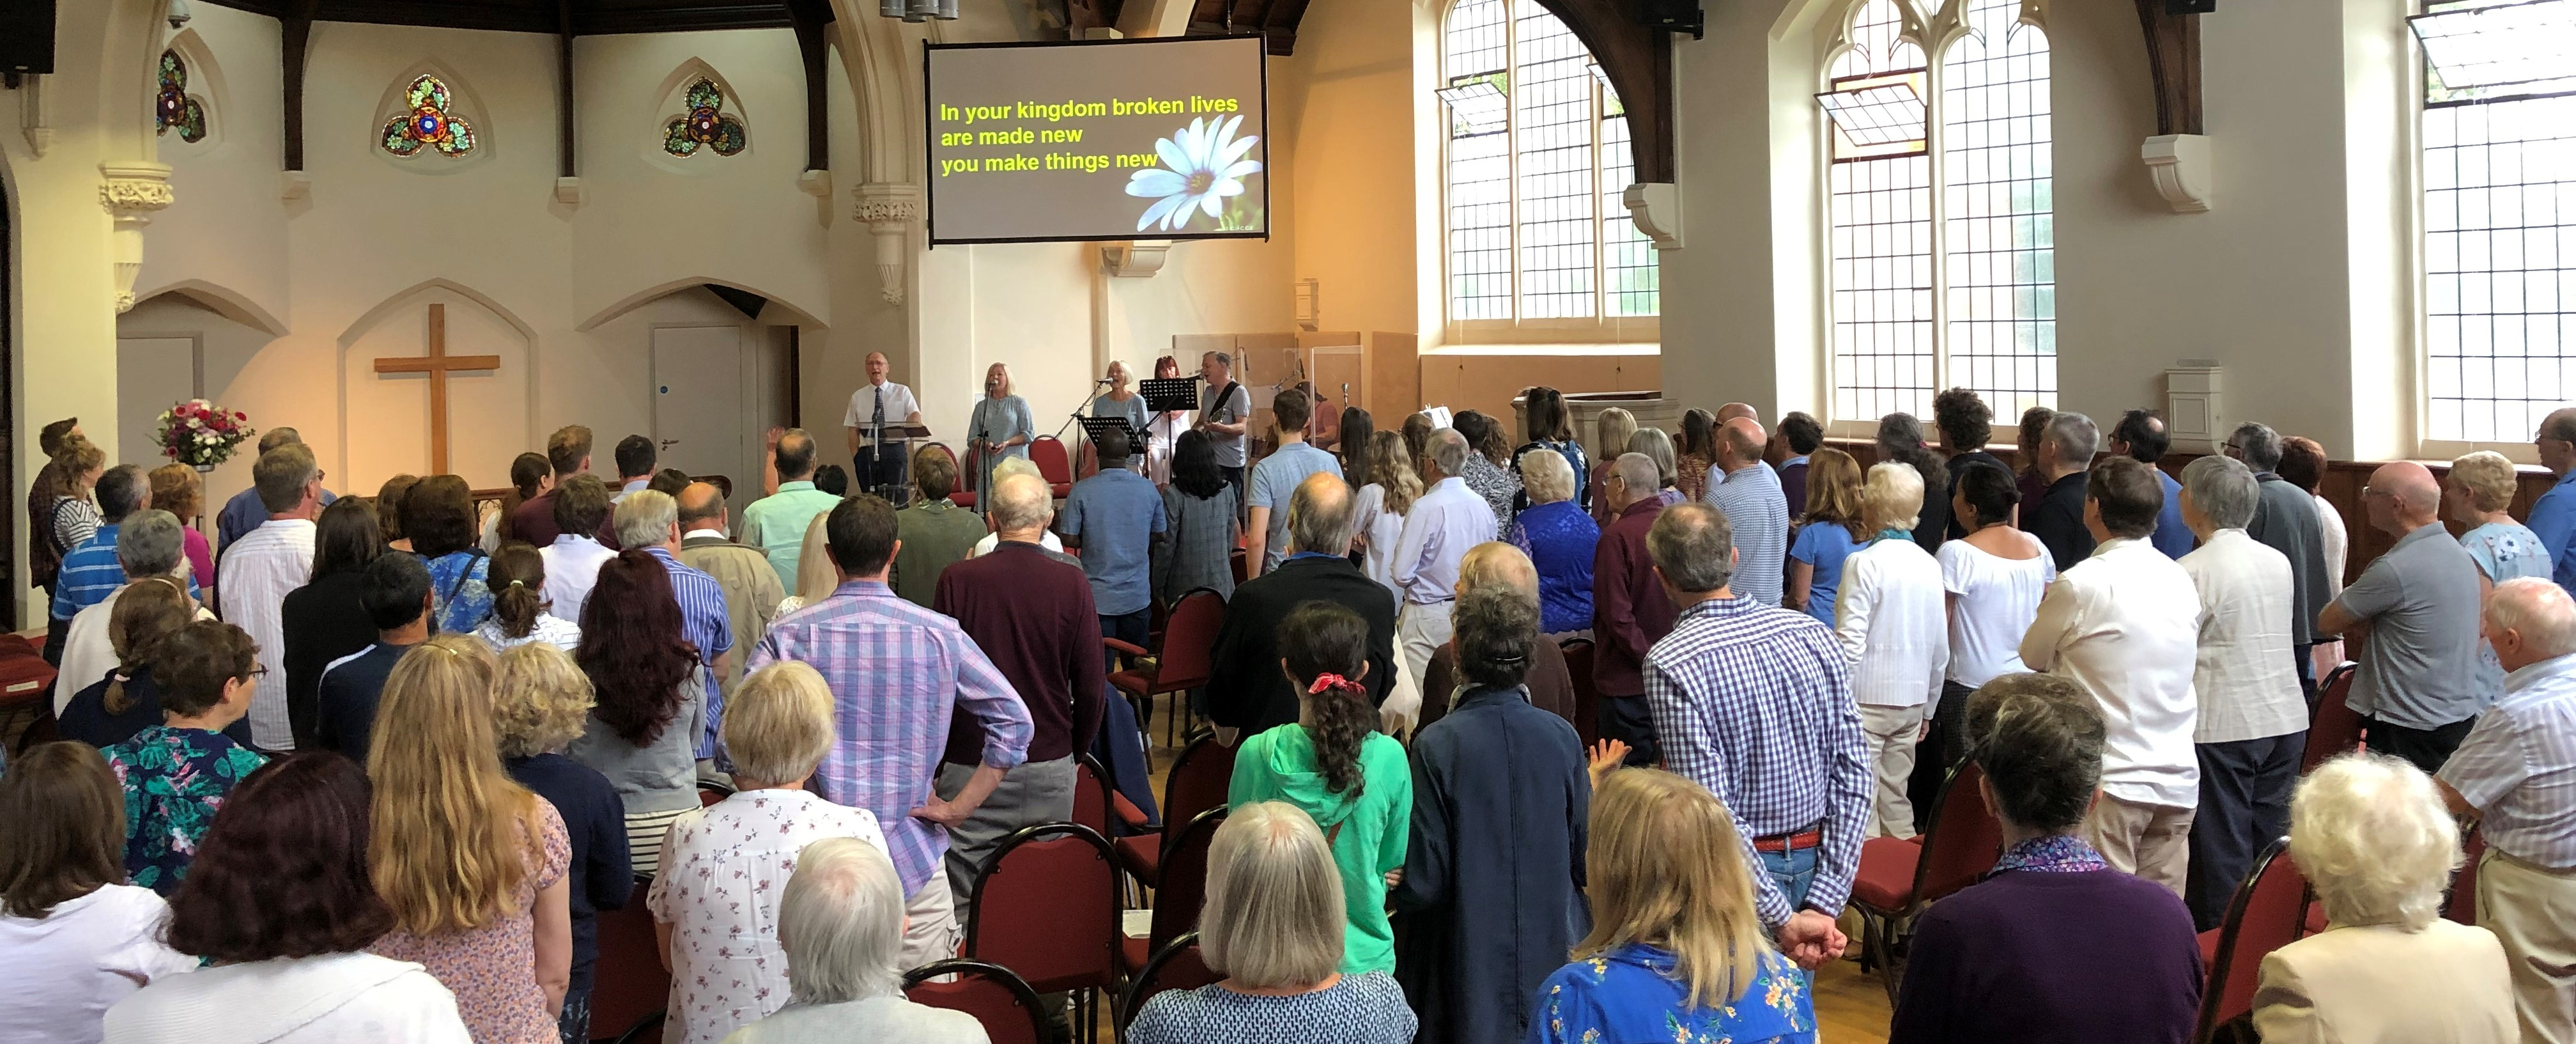 Welcome*to Histon Baptist Church - New to Church?